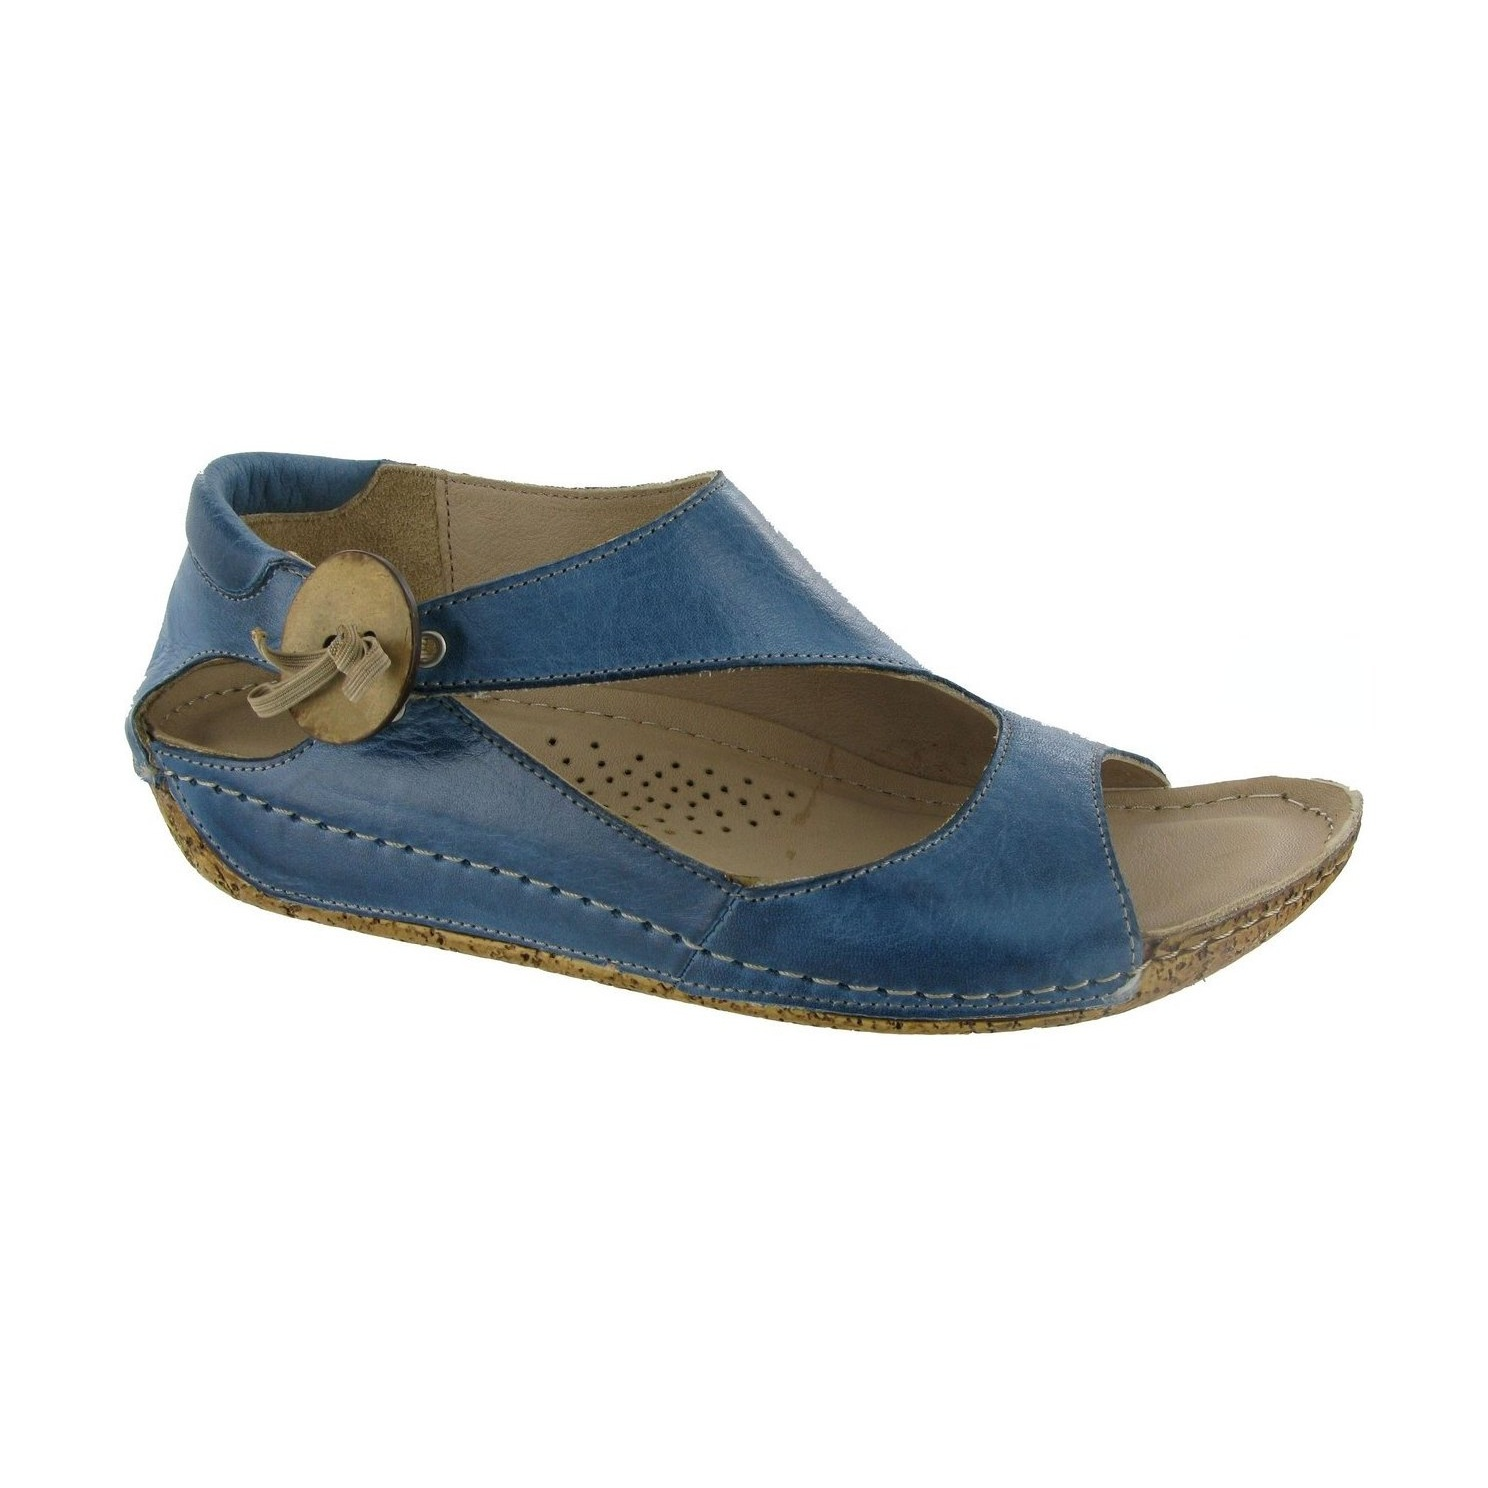 Womens sandals ebay - Riva Cartier Womens Ladies Leather Wedge Slingback Sandals